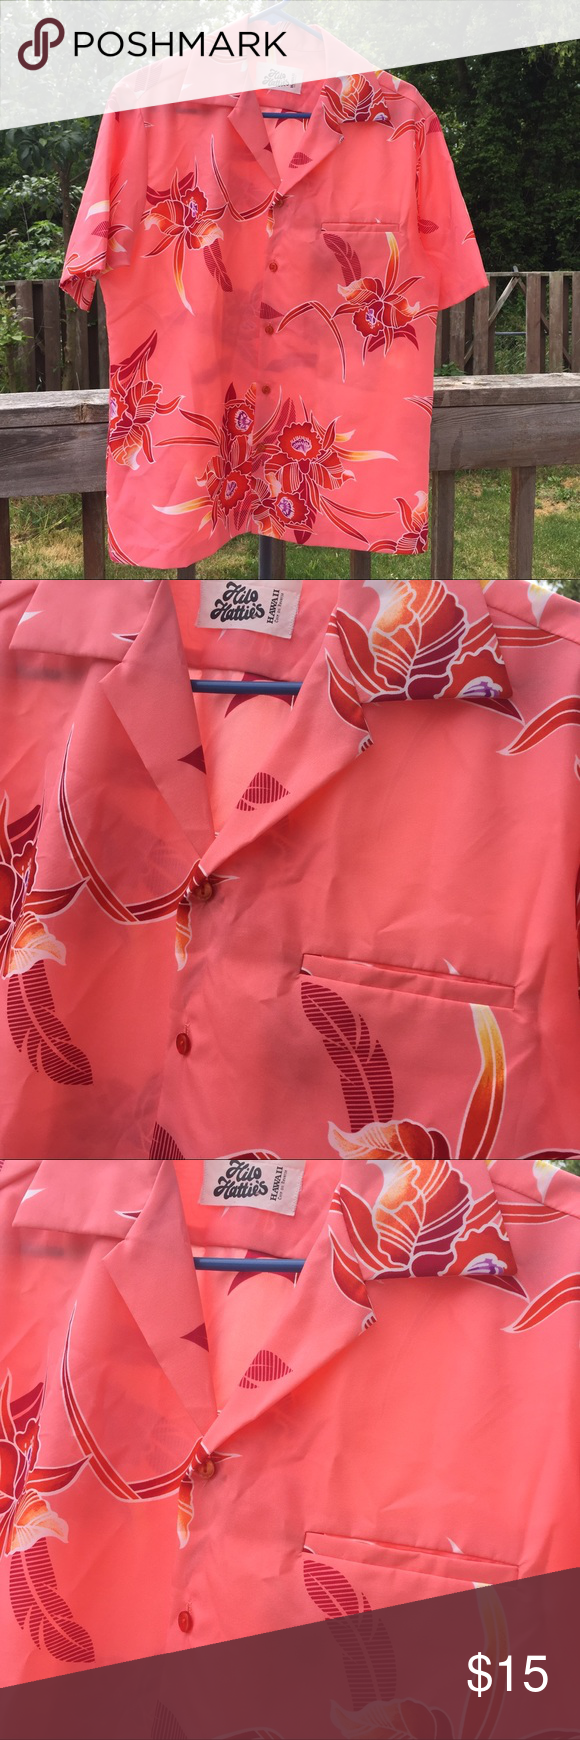 8c815190b446 Vintage Hawaiian shirt M Super lightweight fabric Awesome coral colored  button front Hawaiian shirt with single chest pocket. I believe this is a  men's, ...